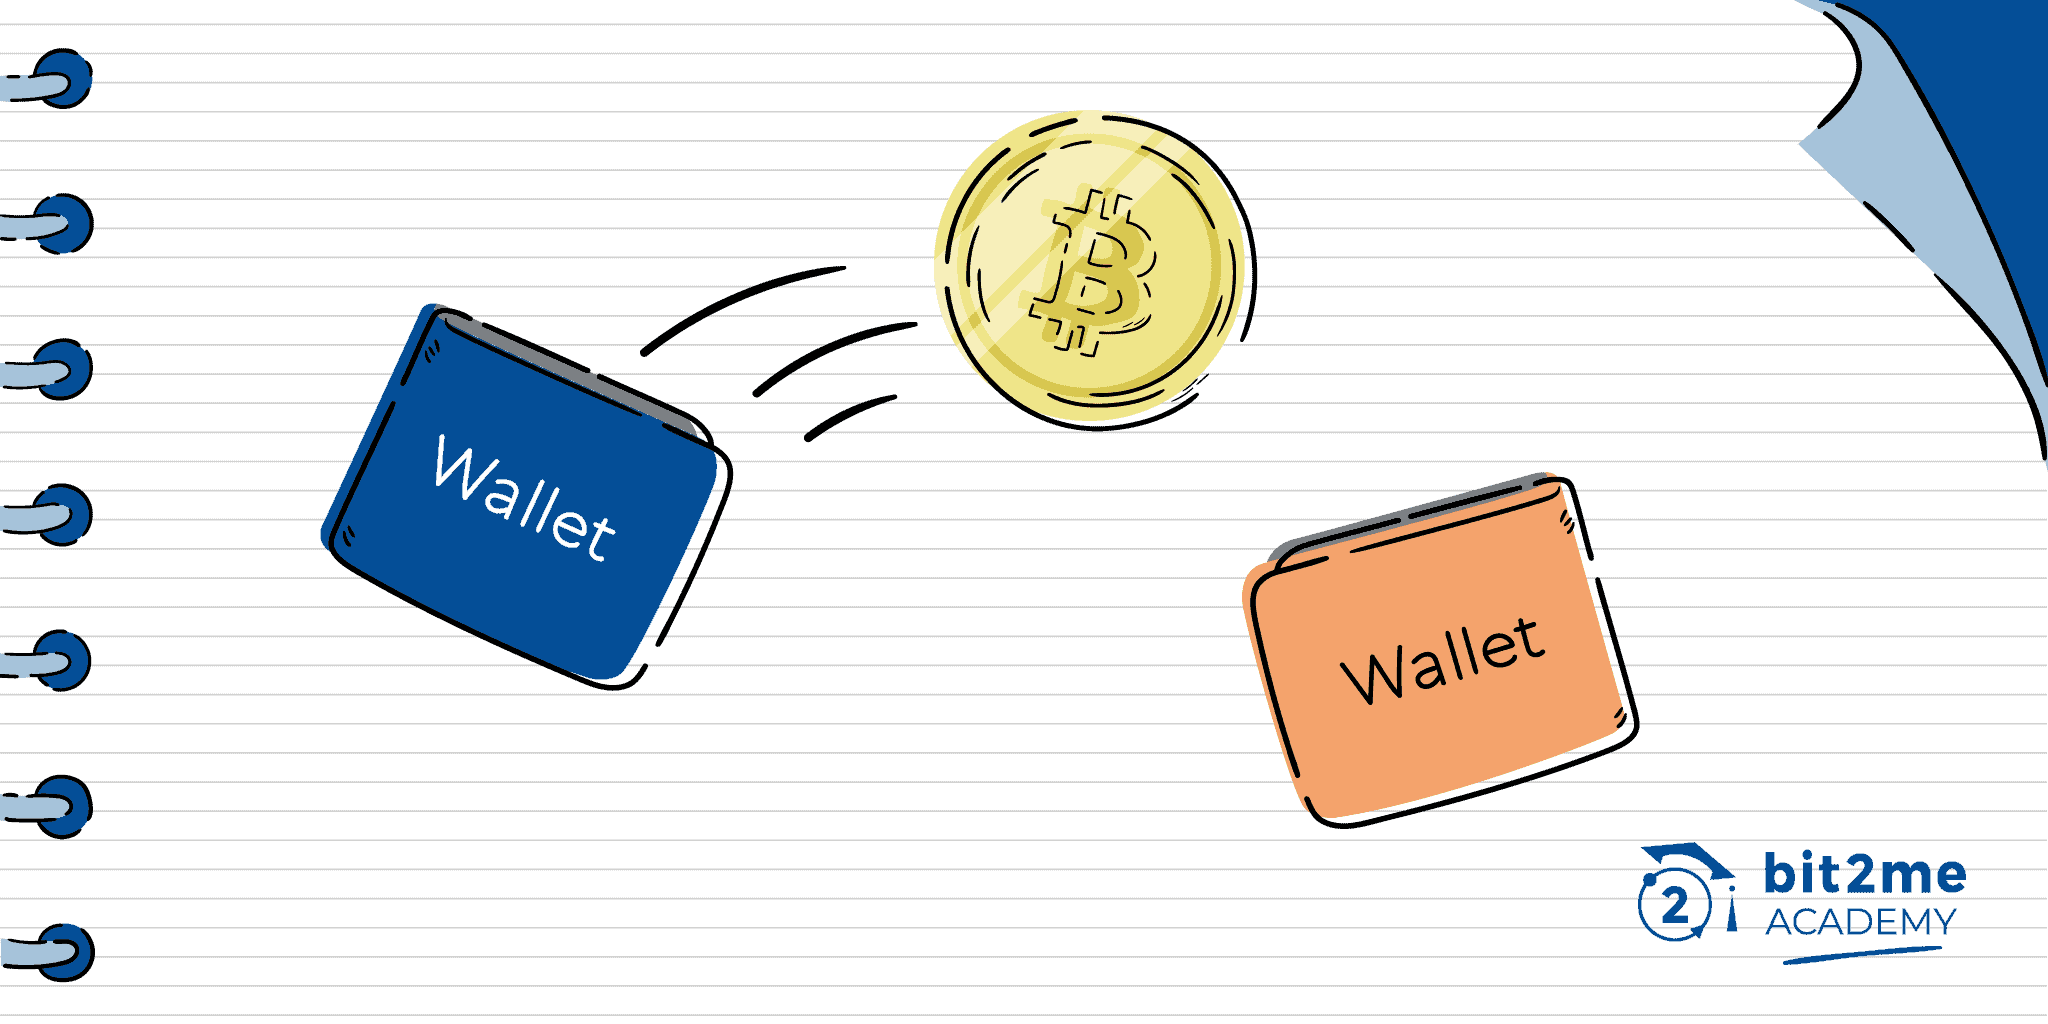 send btc to another wallet, send btc between wallets